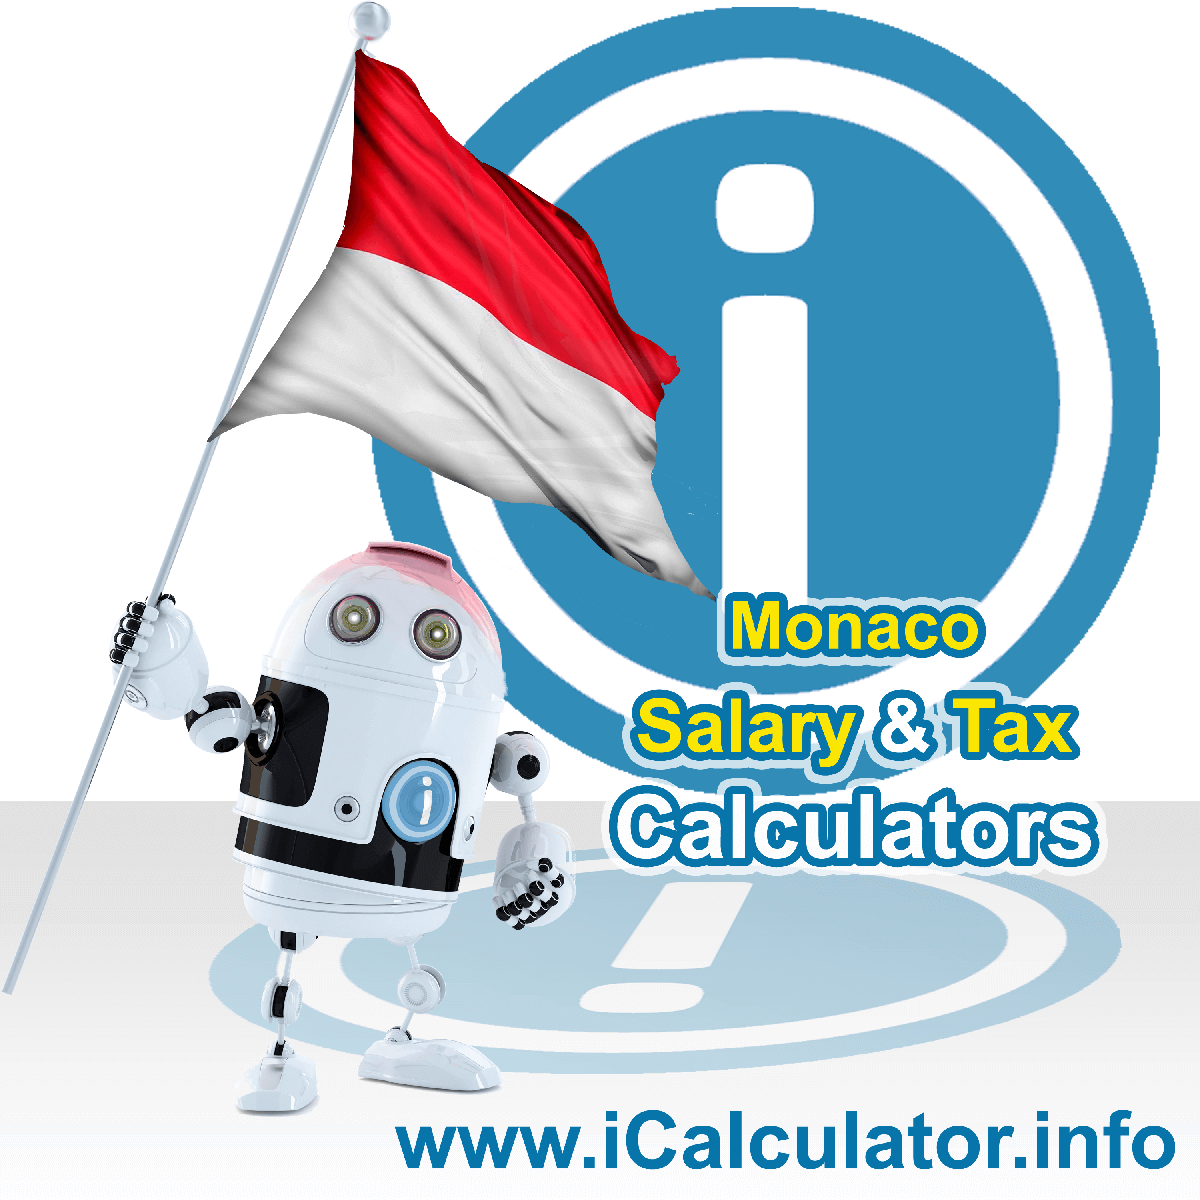 Monaco Wage Calculator. This image shows the Monaco flag and information relating to the tax formula for the Monaco Tax Calculator